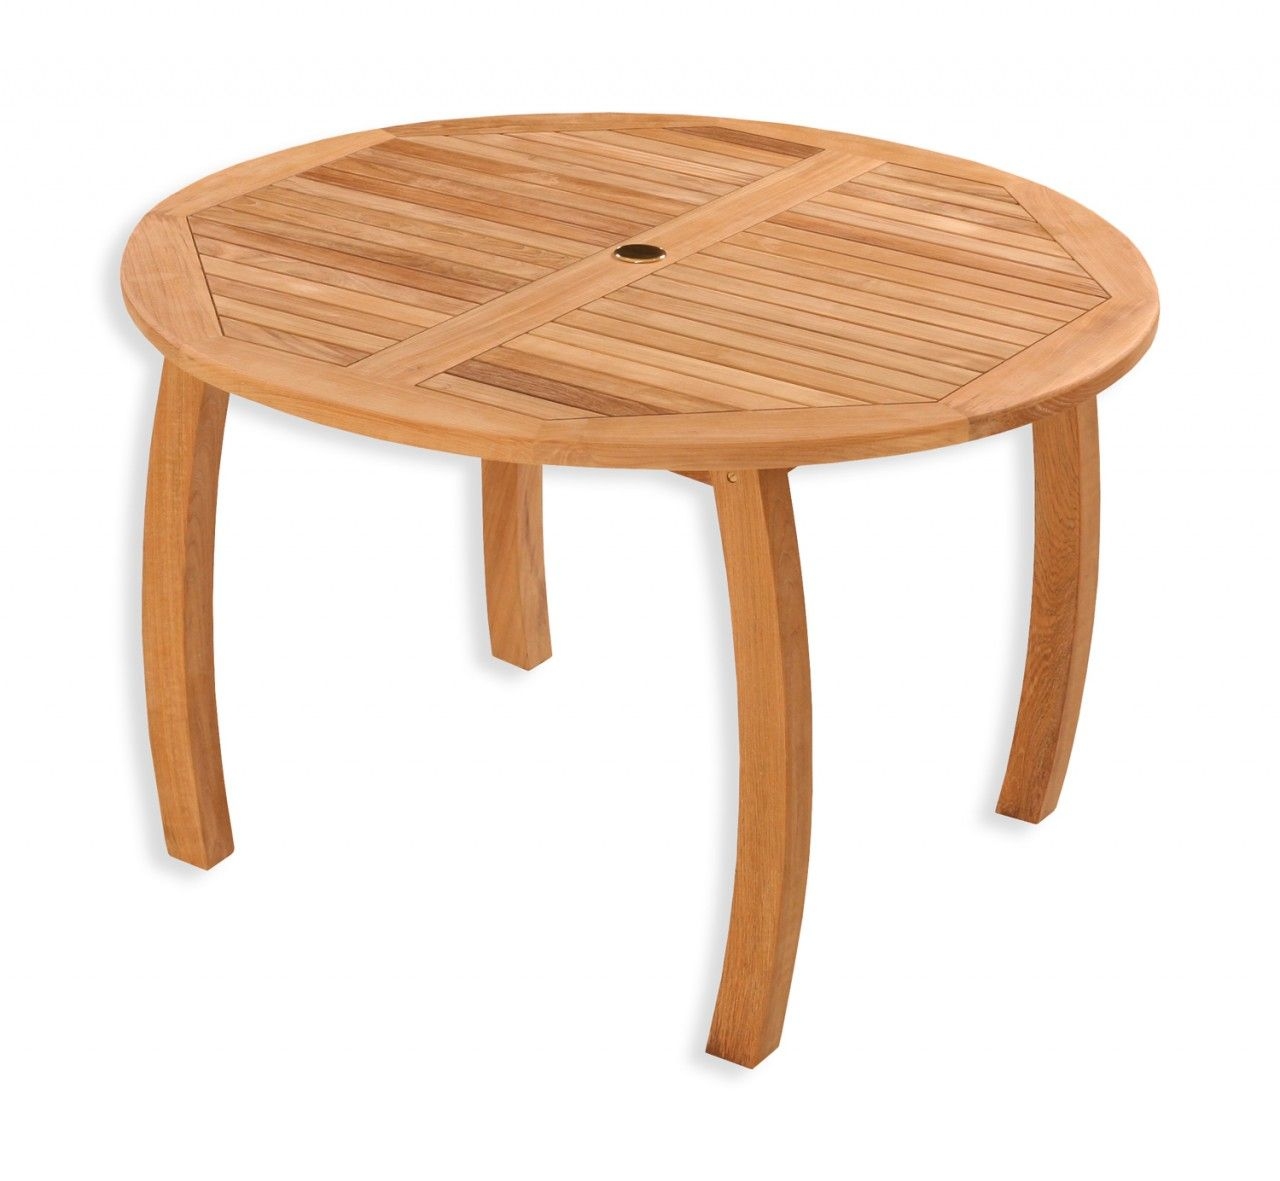 Ordinaire Find This Pin And More On Discounted Teak Patio Furniture From Home And Patio  Decor Center.